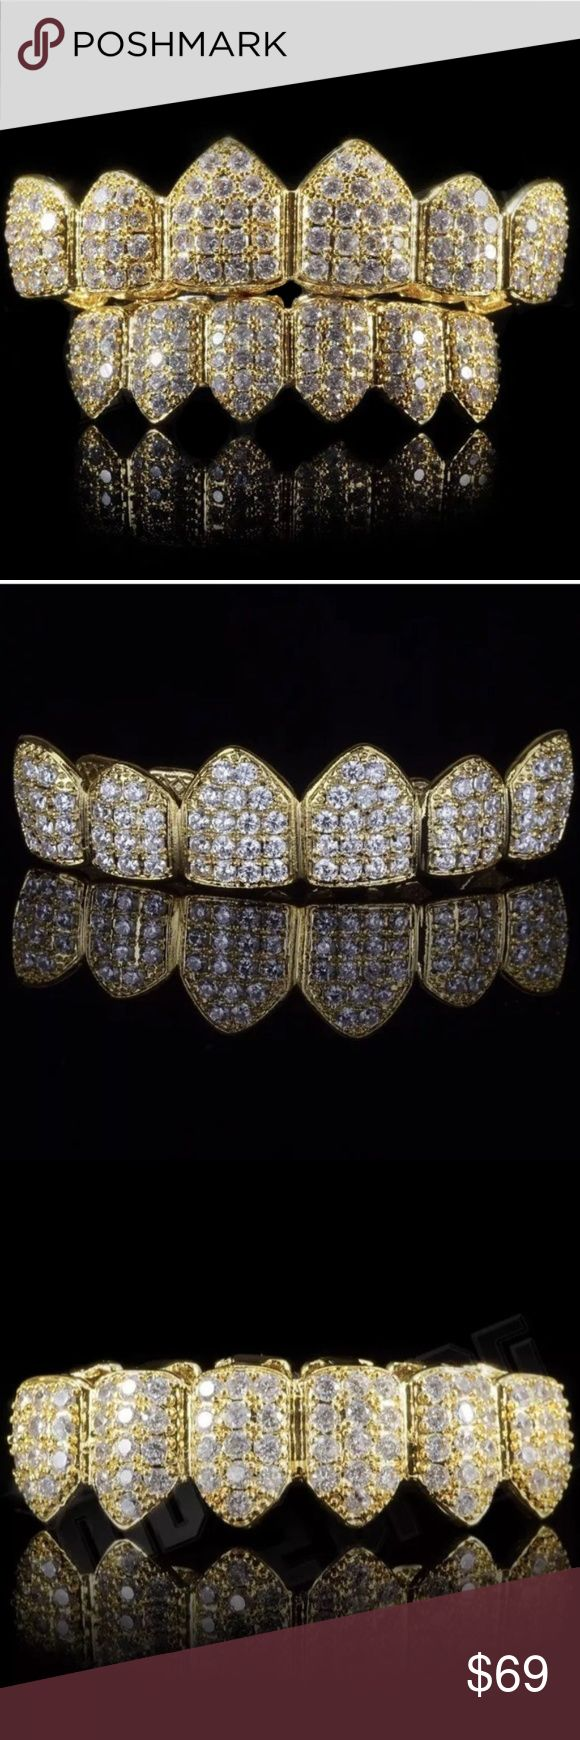 14k Gold ICED OUT CZ Diamond Grillz Set This is one of the most popular Grillz Sets on the market right now! Made of the highest quality materials get Iced Out today! Quick Shipping and superb quality!  14k Gold Plated (3x Electroplated) AAA High Grade Cubic Zirconia Micro Pave Stone setting Molds Included Primobling Accessories Jewelry